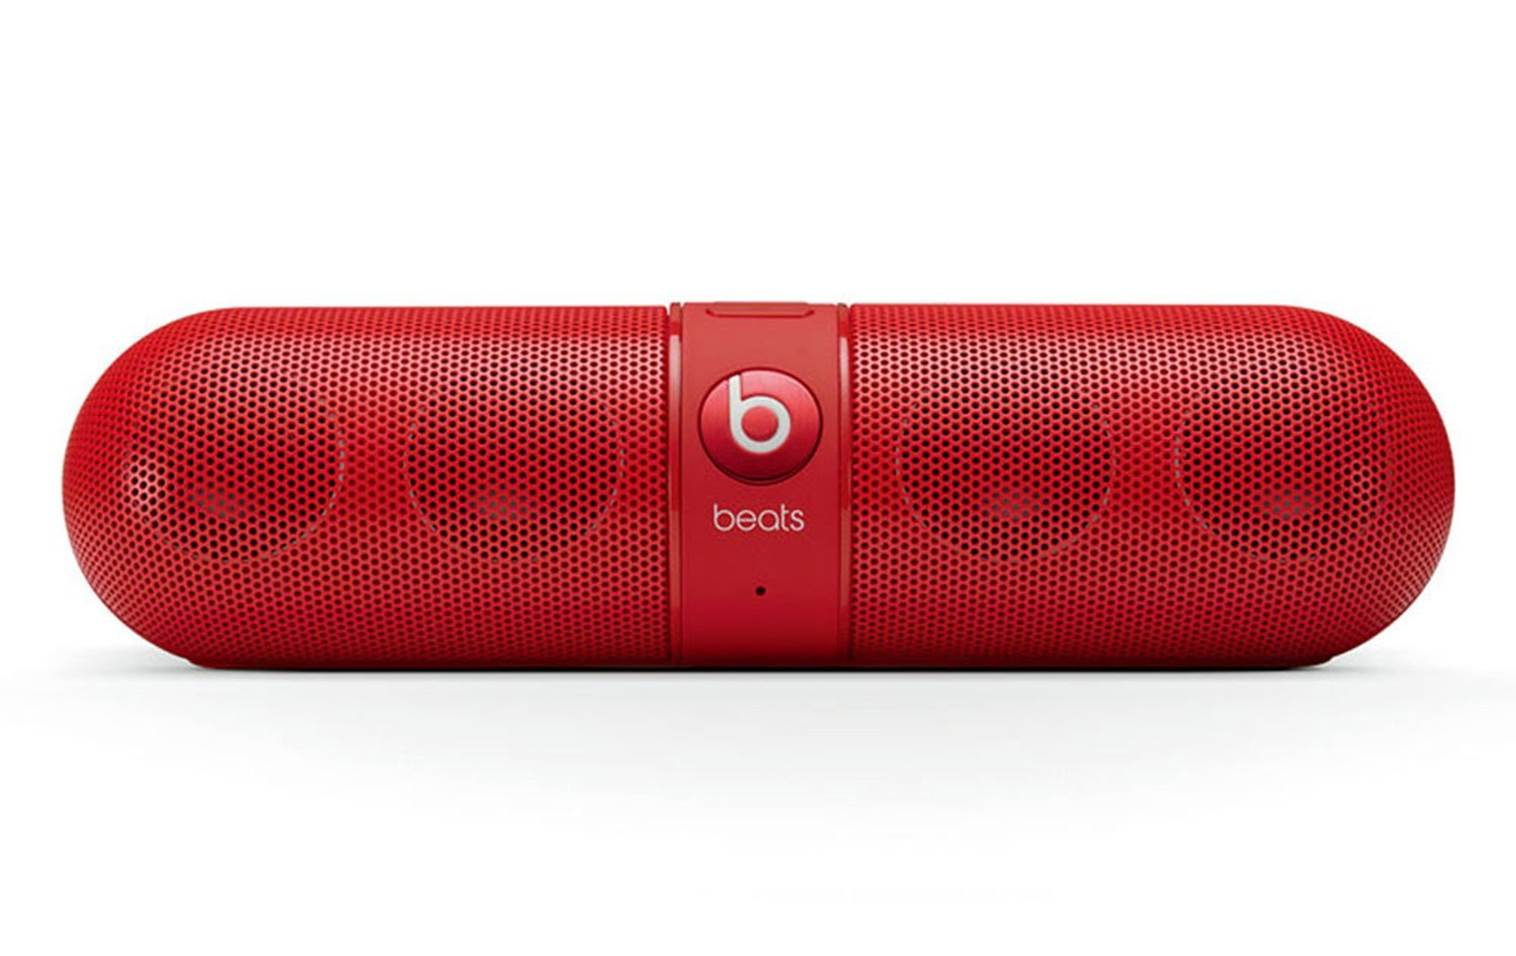 Beats Pill 2.0 Portable Bluetooth Speaker